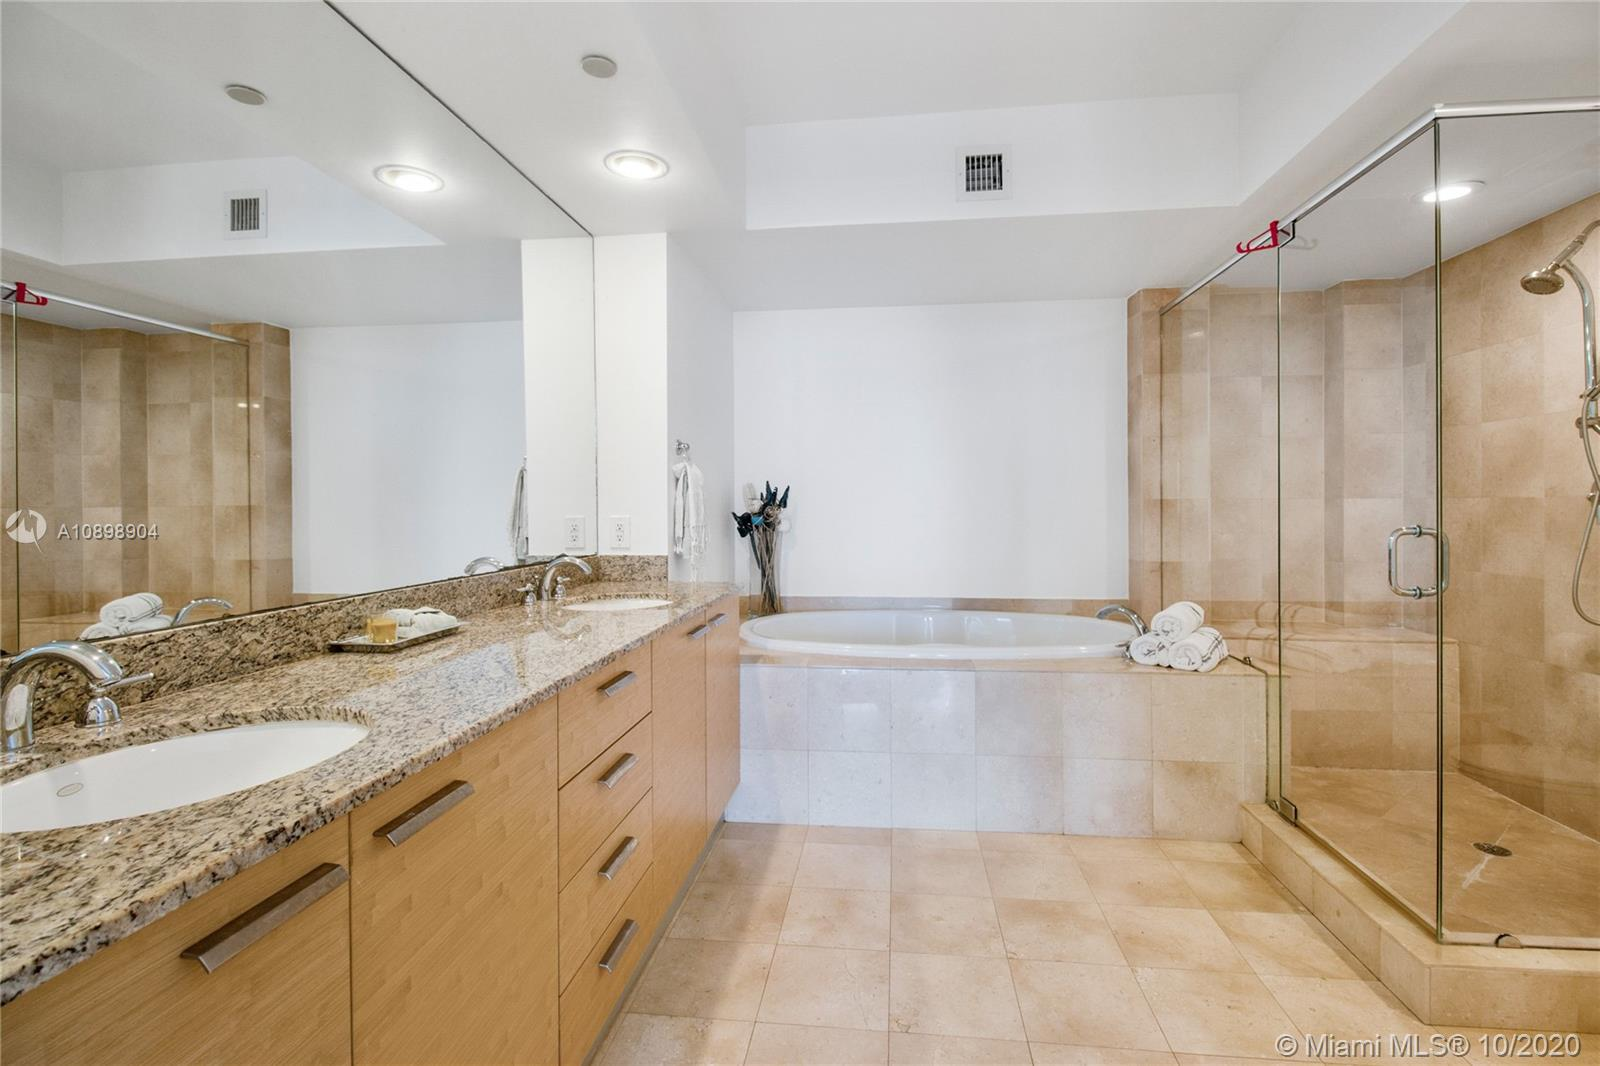 4303 3 / 3 1733 sq. ft. $ 2020-07-23 0 Photo